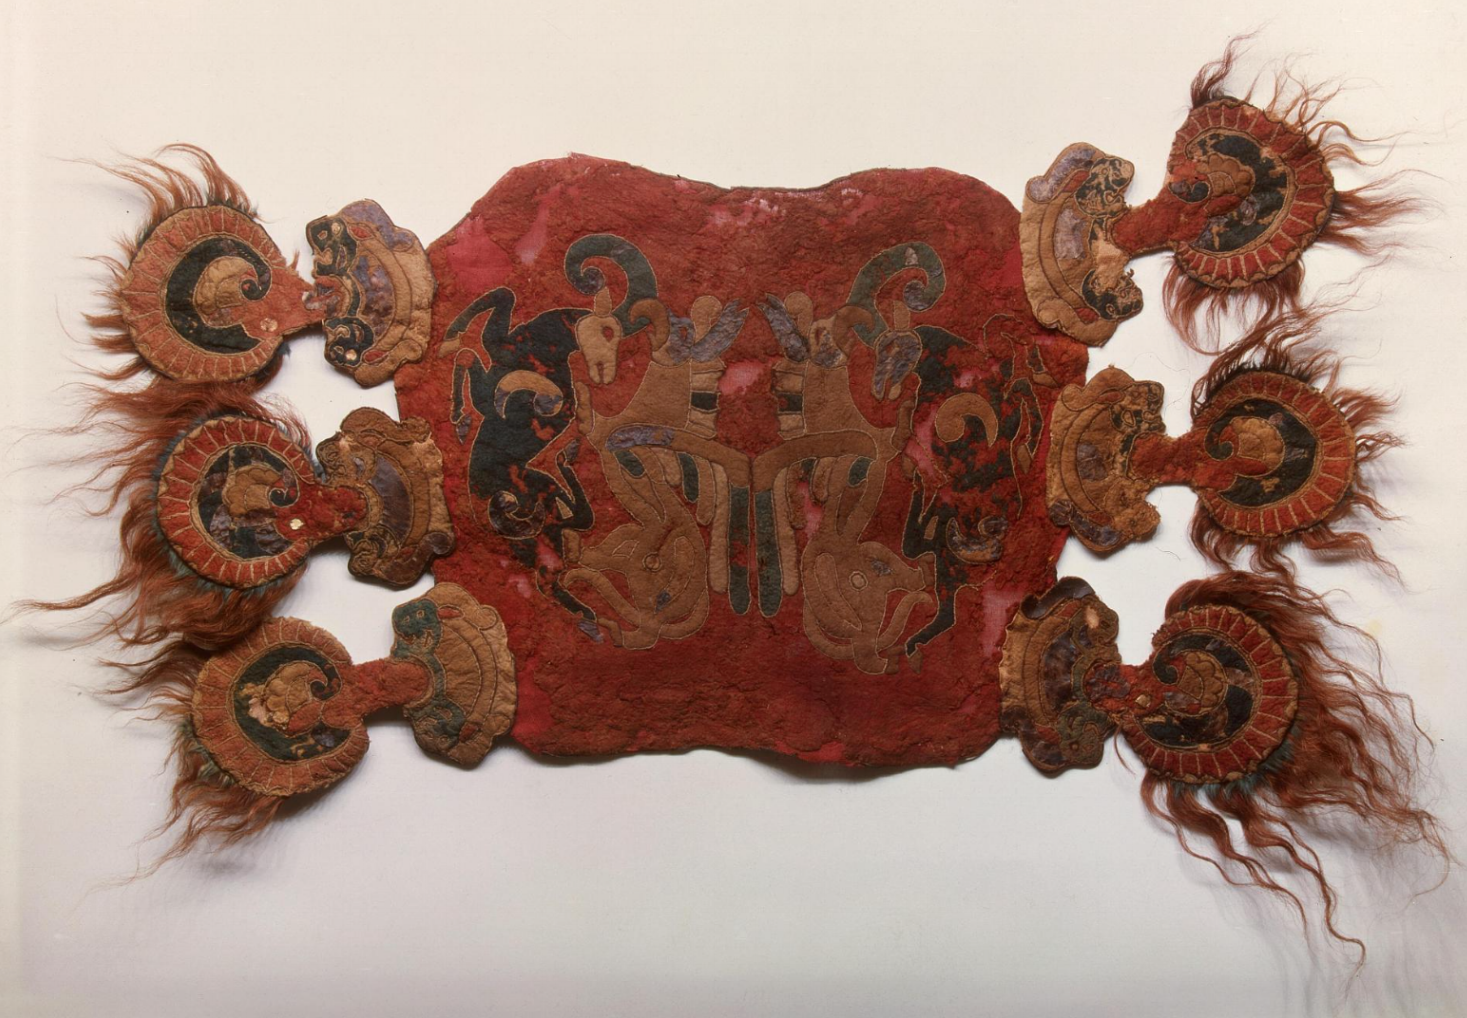 Saddle cover, Southern Siberia, collection of State Hermitage Museum, St Petersburg, Russia